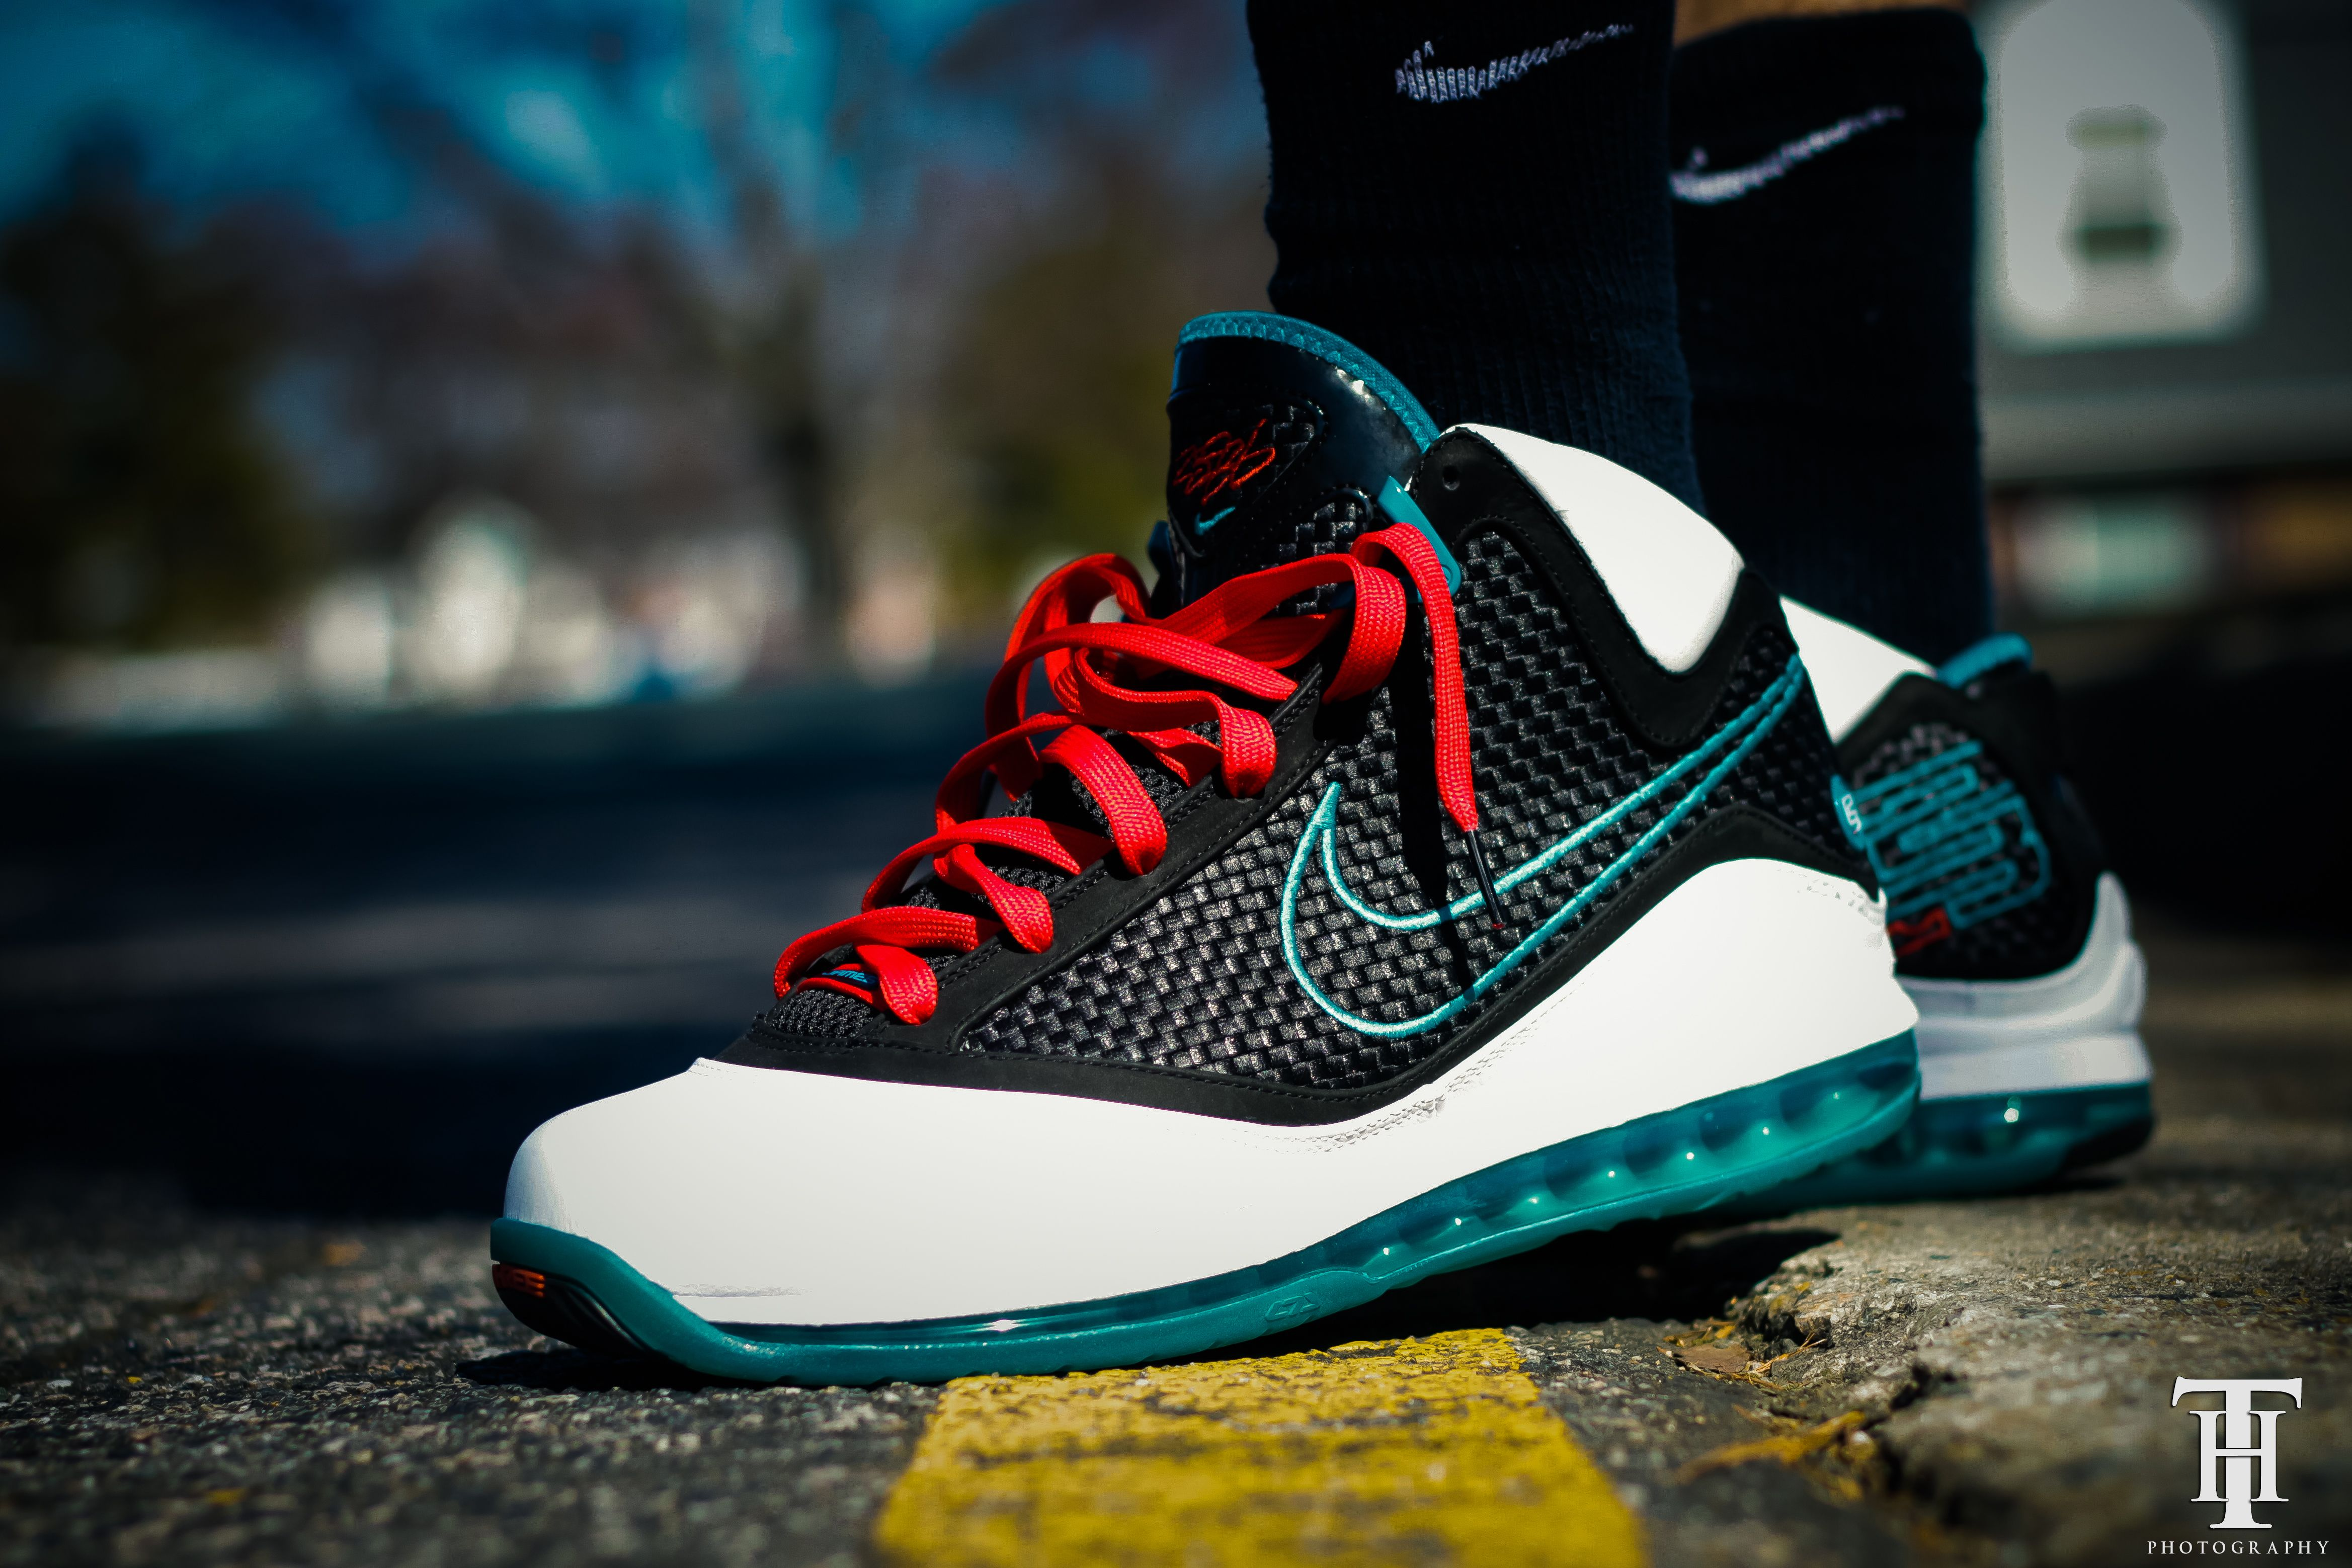 lebron vii red carpet my shoes wishlist pinterest